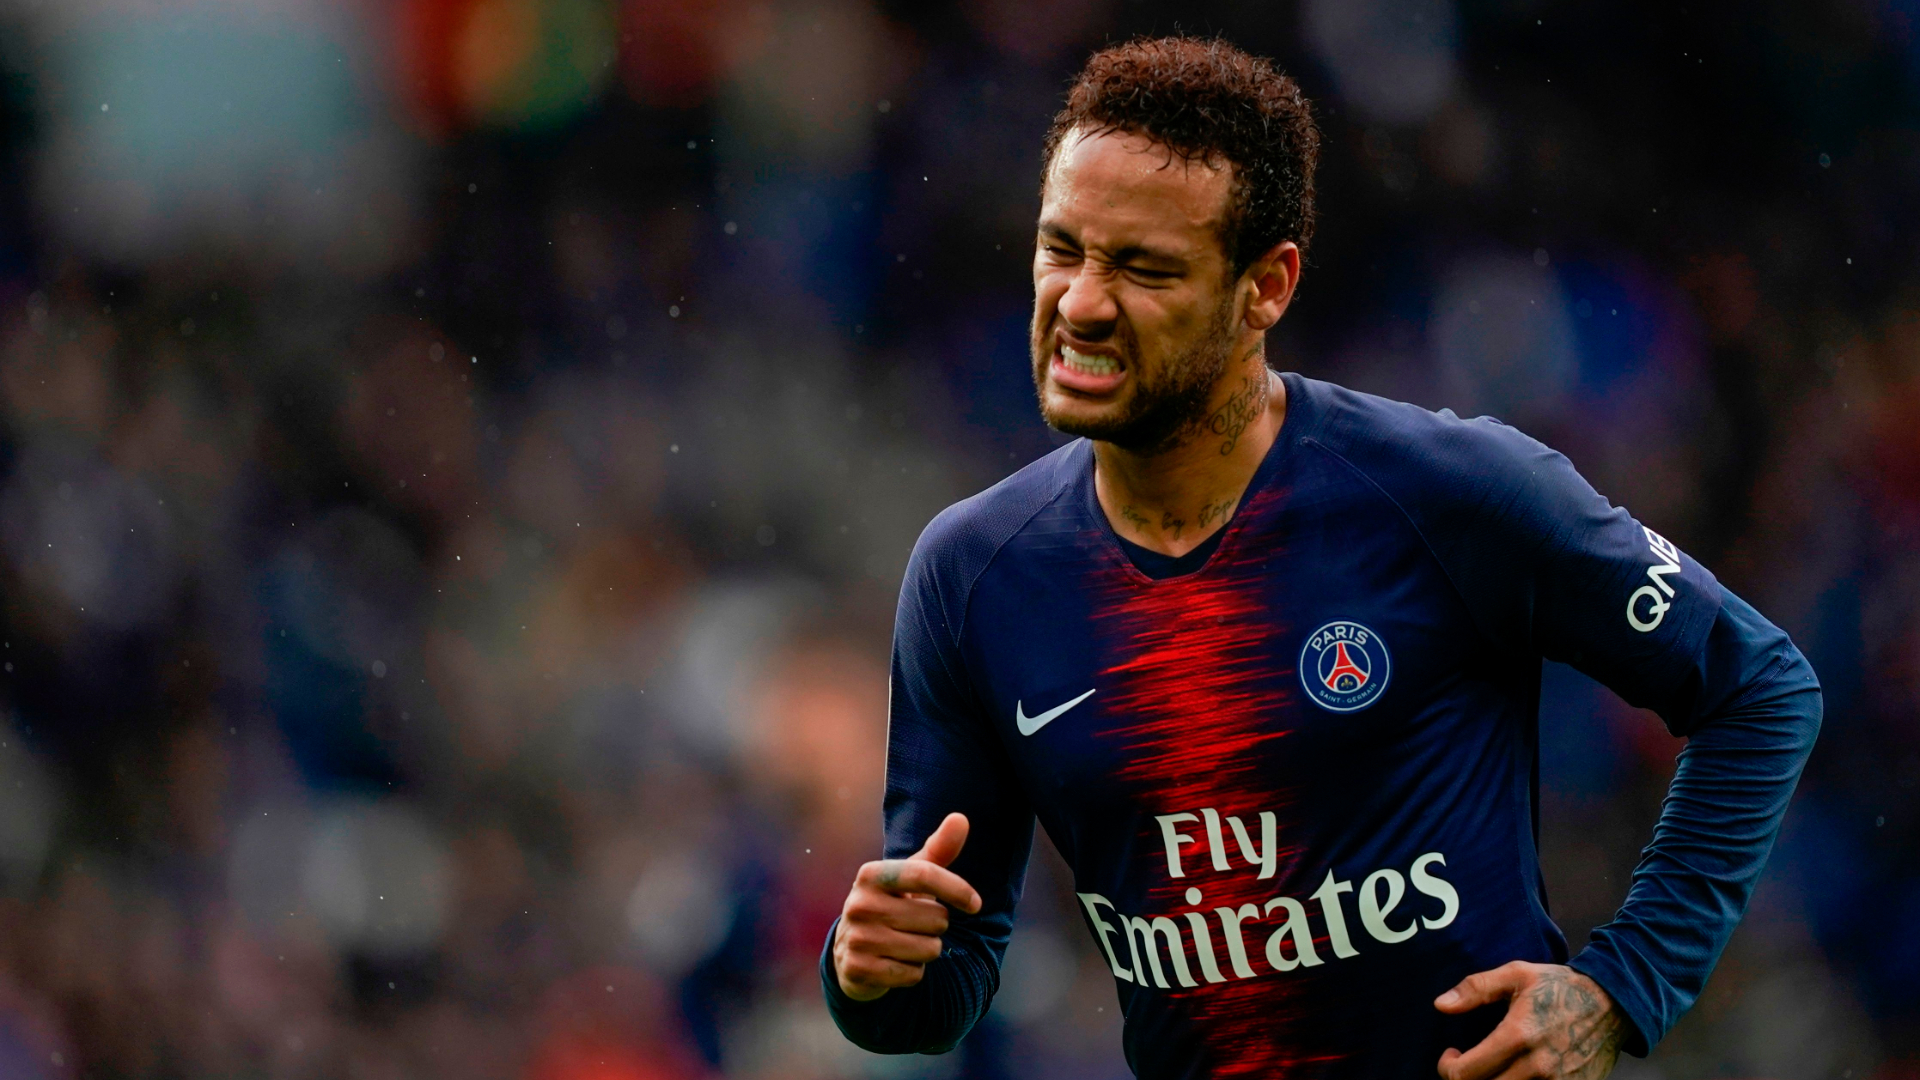 Barcelona 'will do what we can' to sign Neymar, says club director Bordas